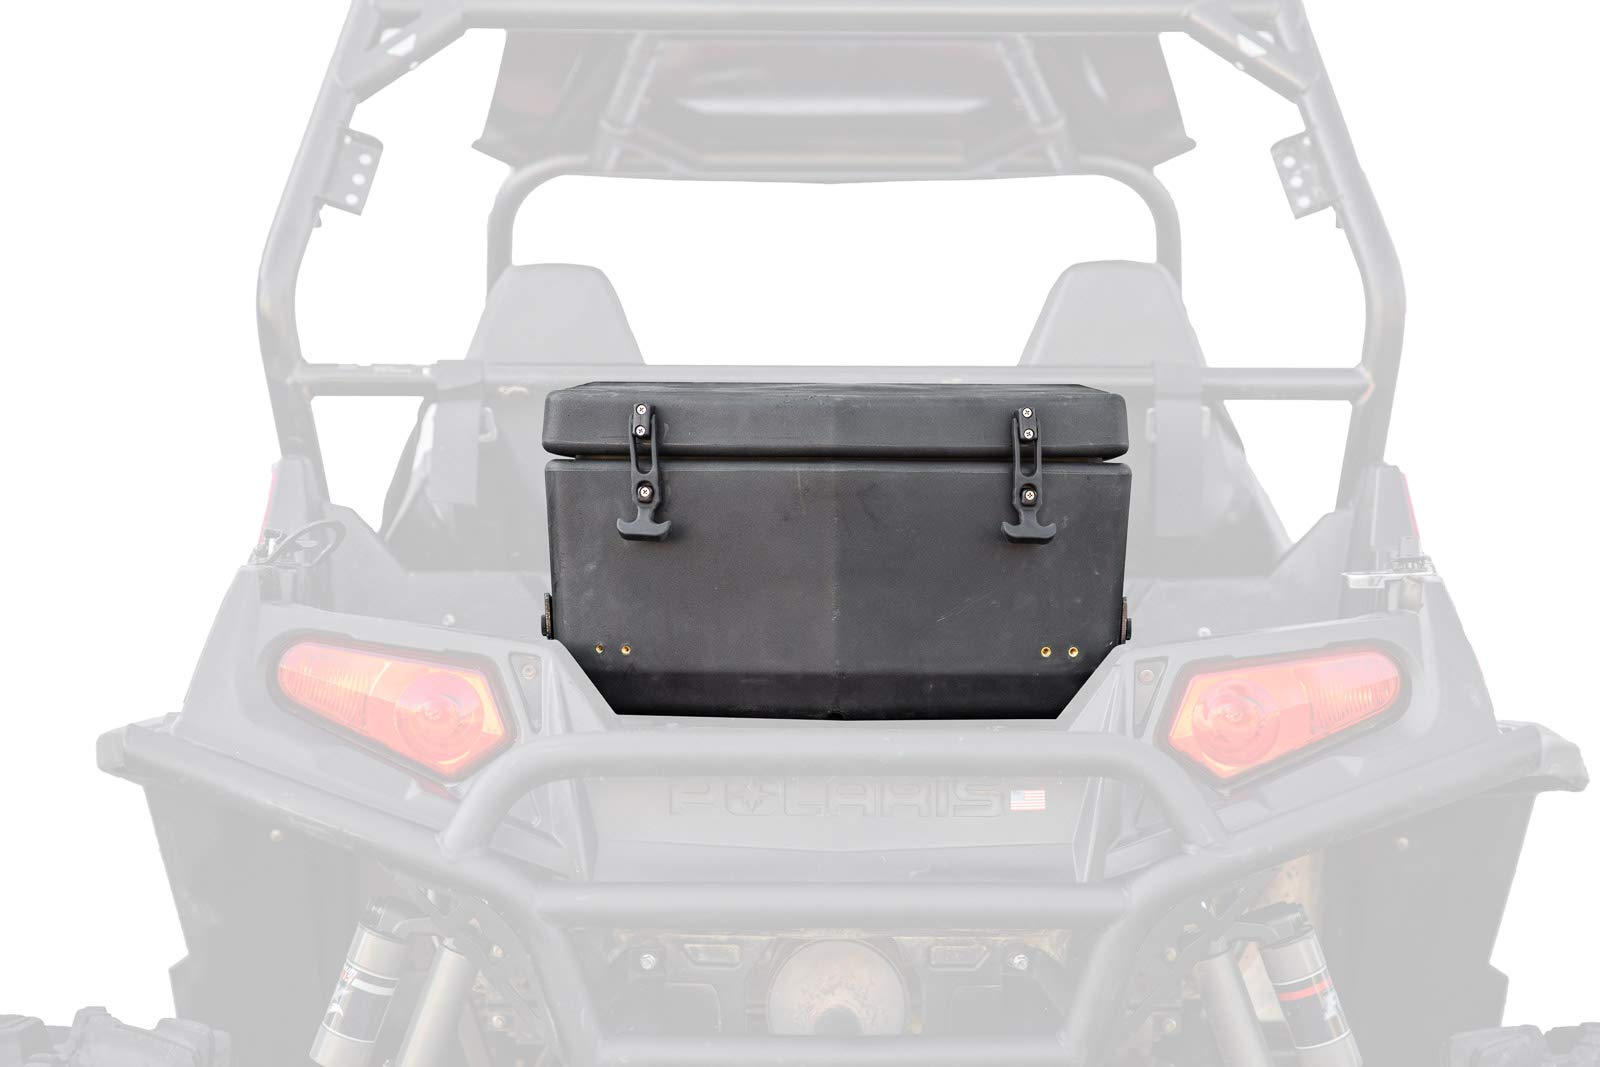 SuperATV Rear Heavy Duty Cargo Storage Box/Cooler for Polaris RZR 800/800 S / 800 4/570 - Insulated to Keep Drinks Cold by SuperATV.com